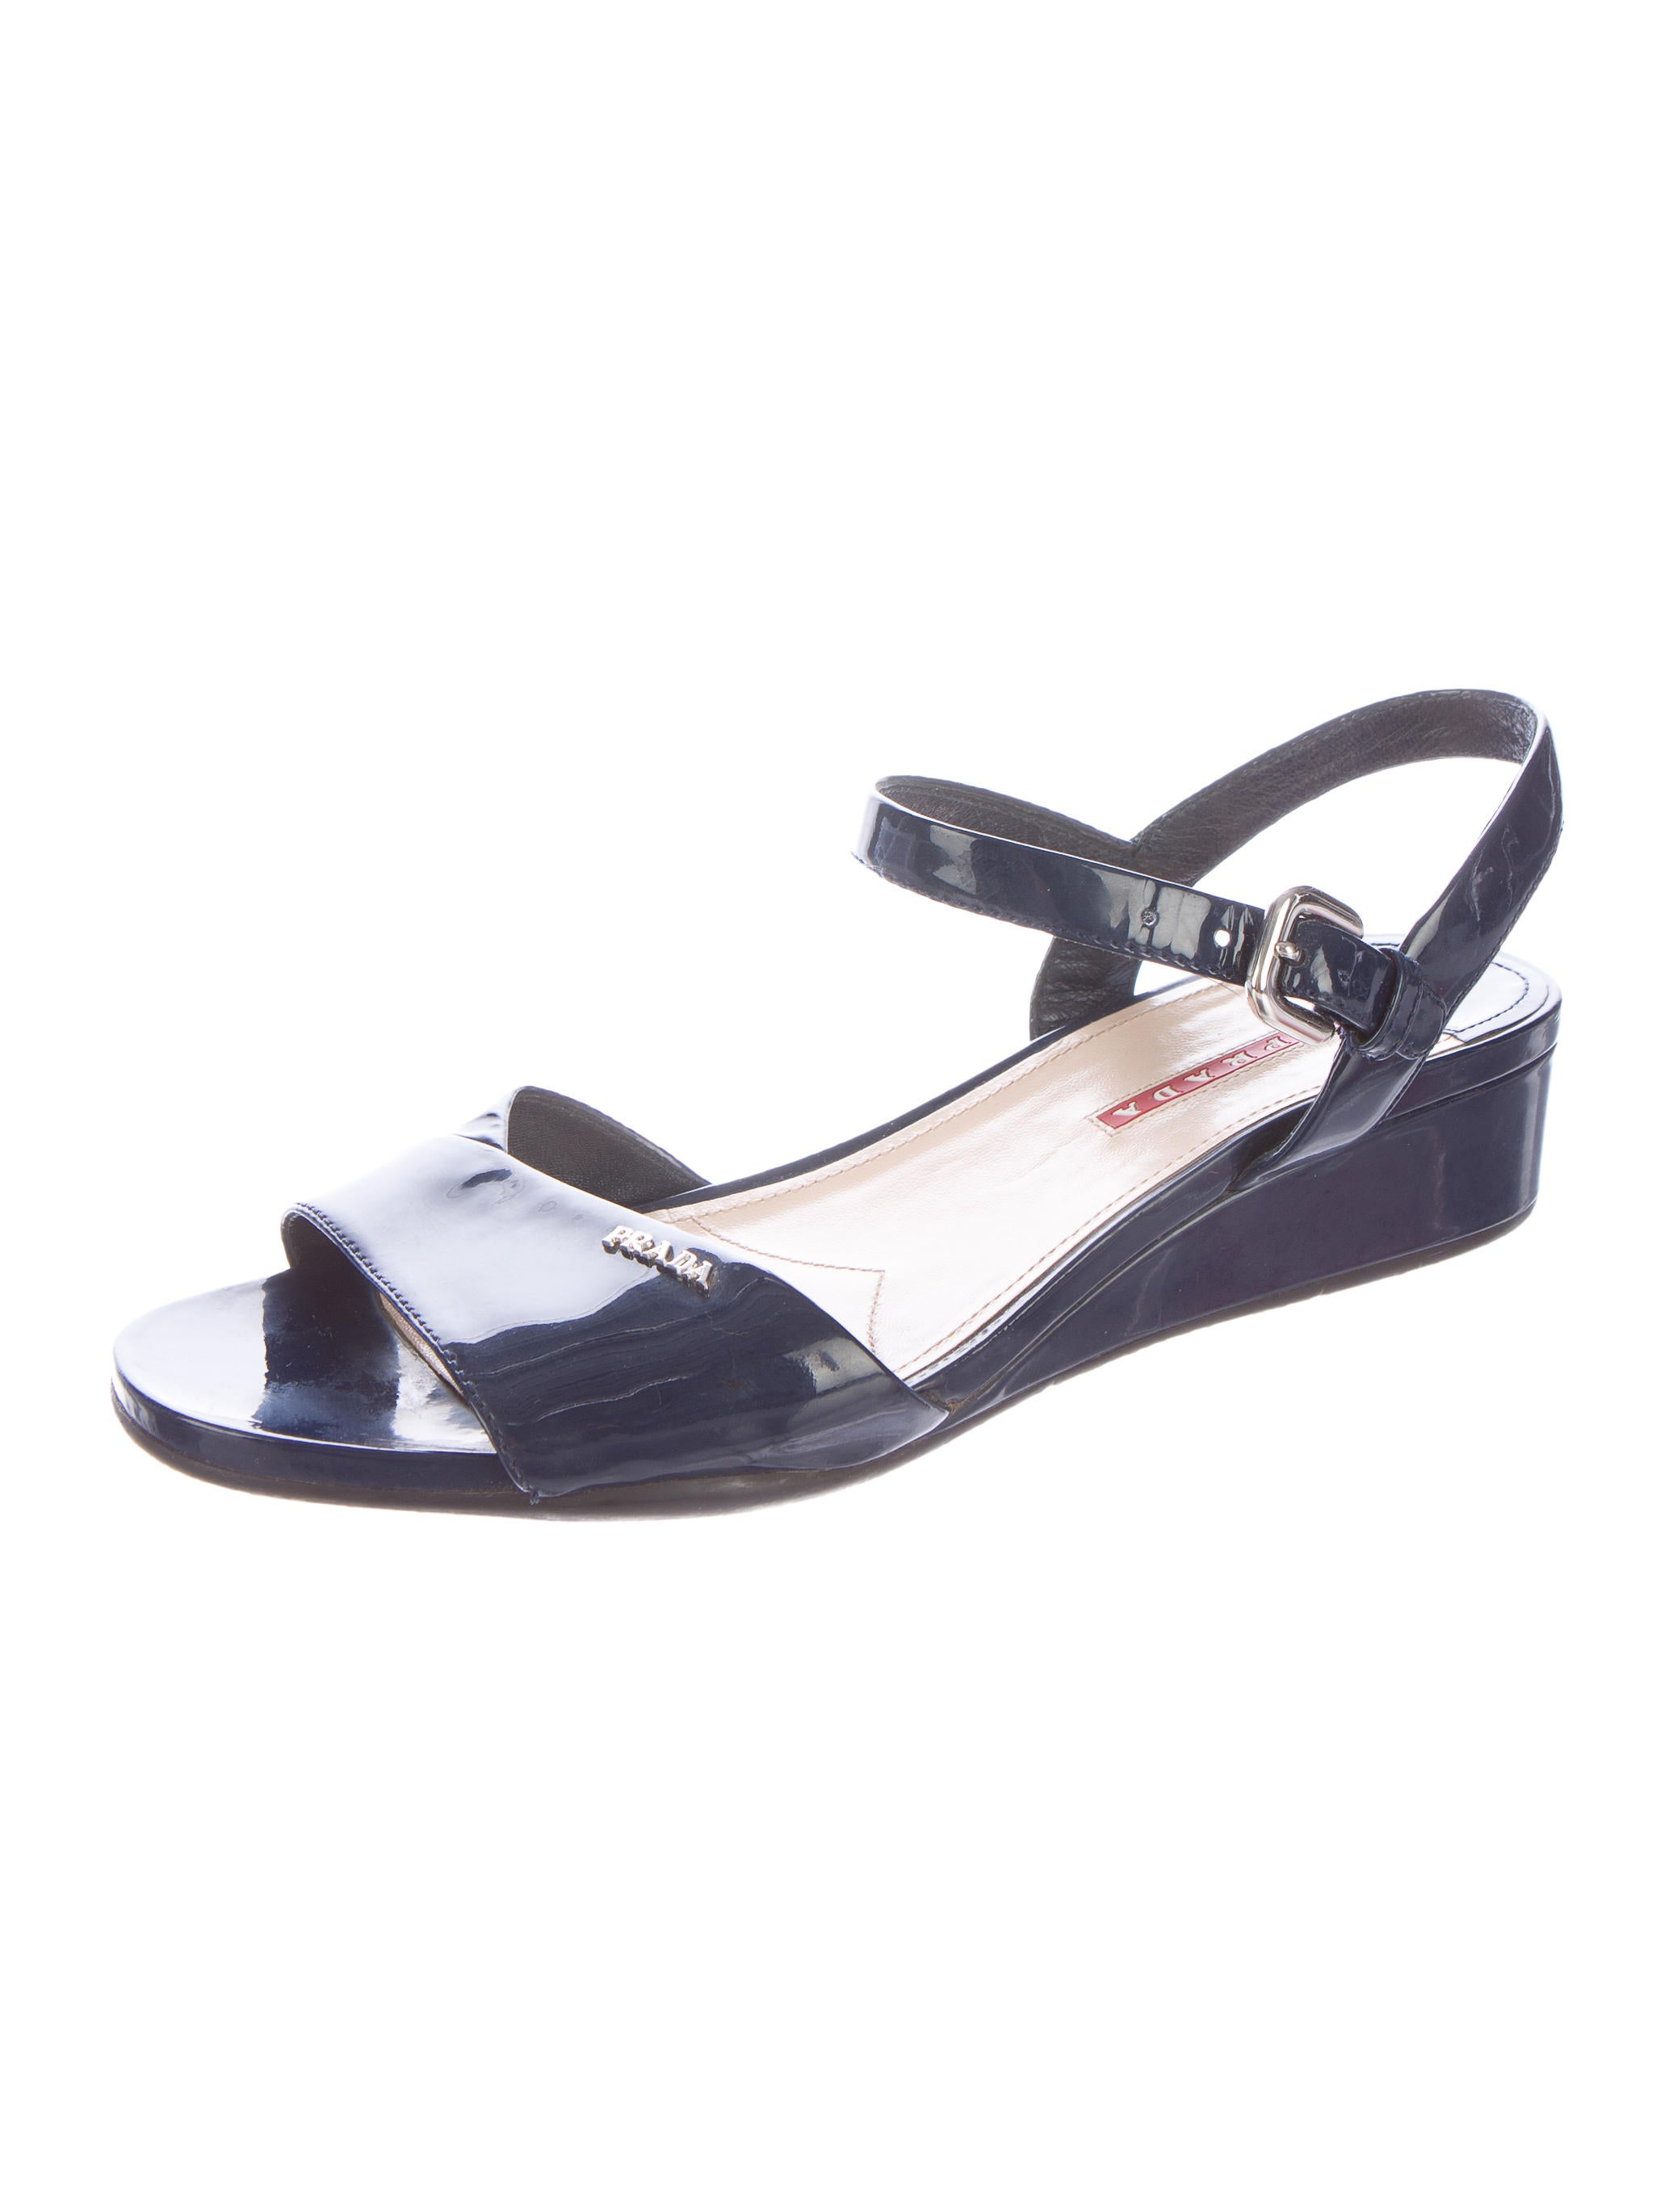 prada sport patent leather sandals shoes wpr34218